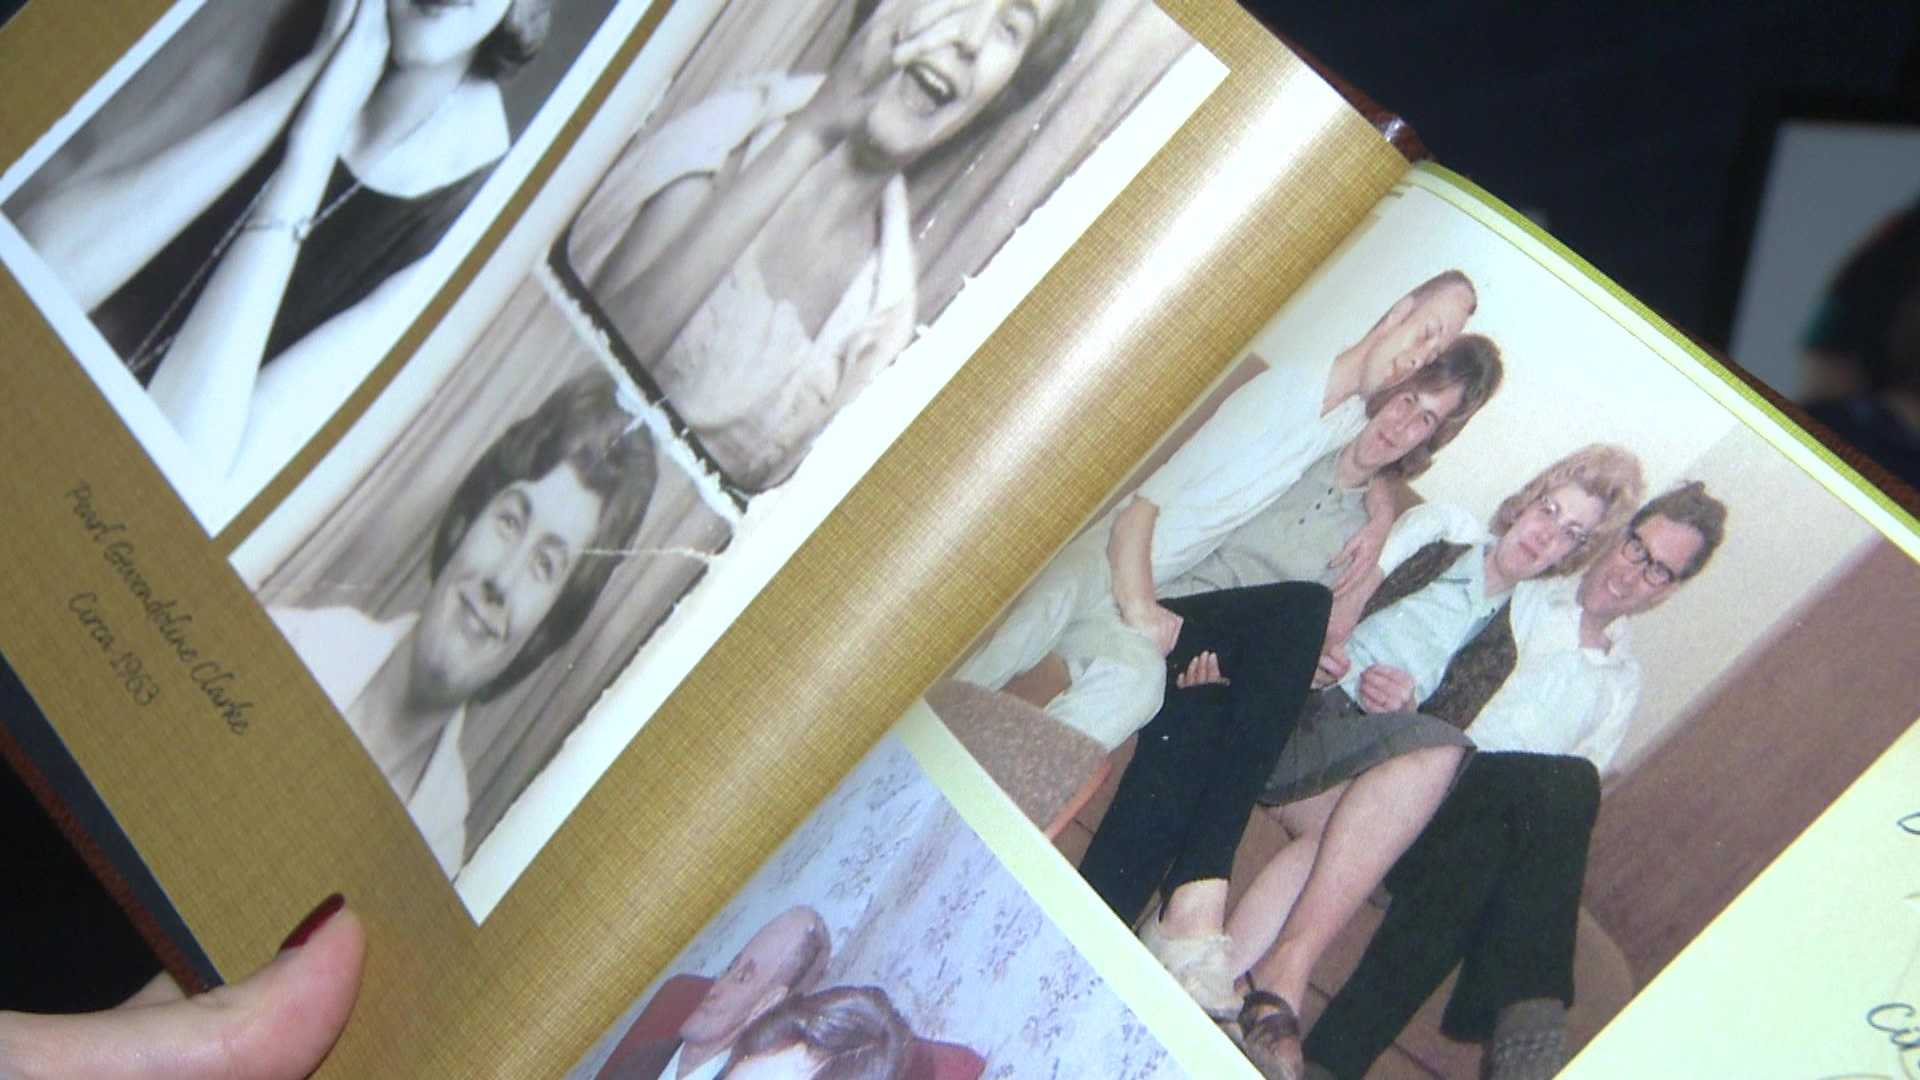 Family photos show Pearl Denison.